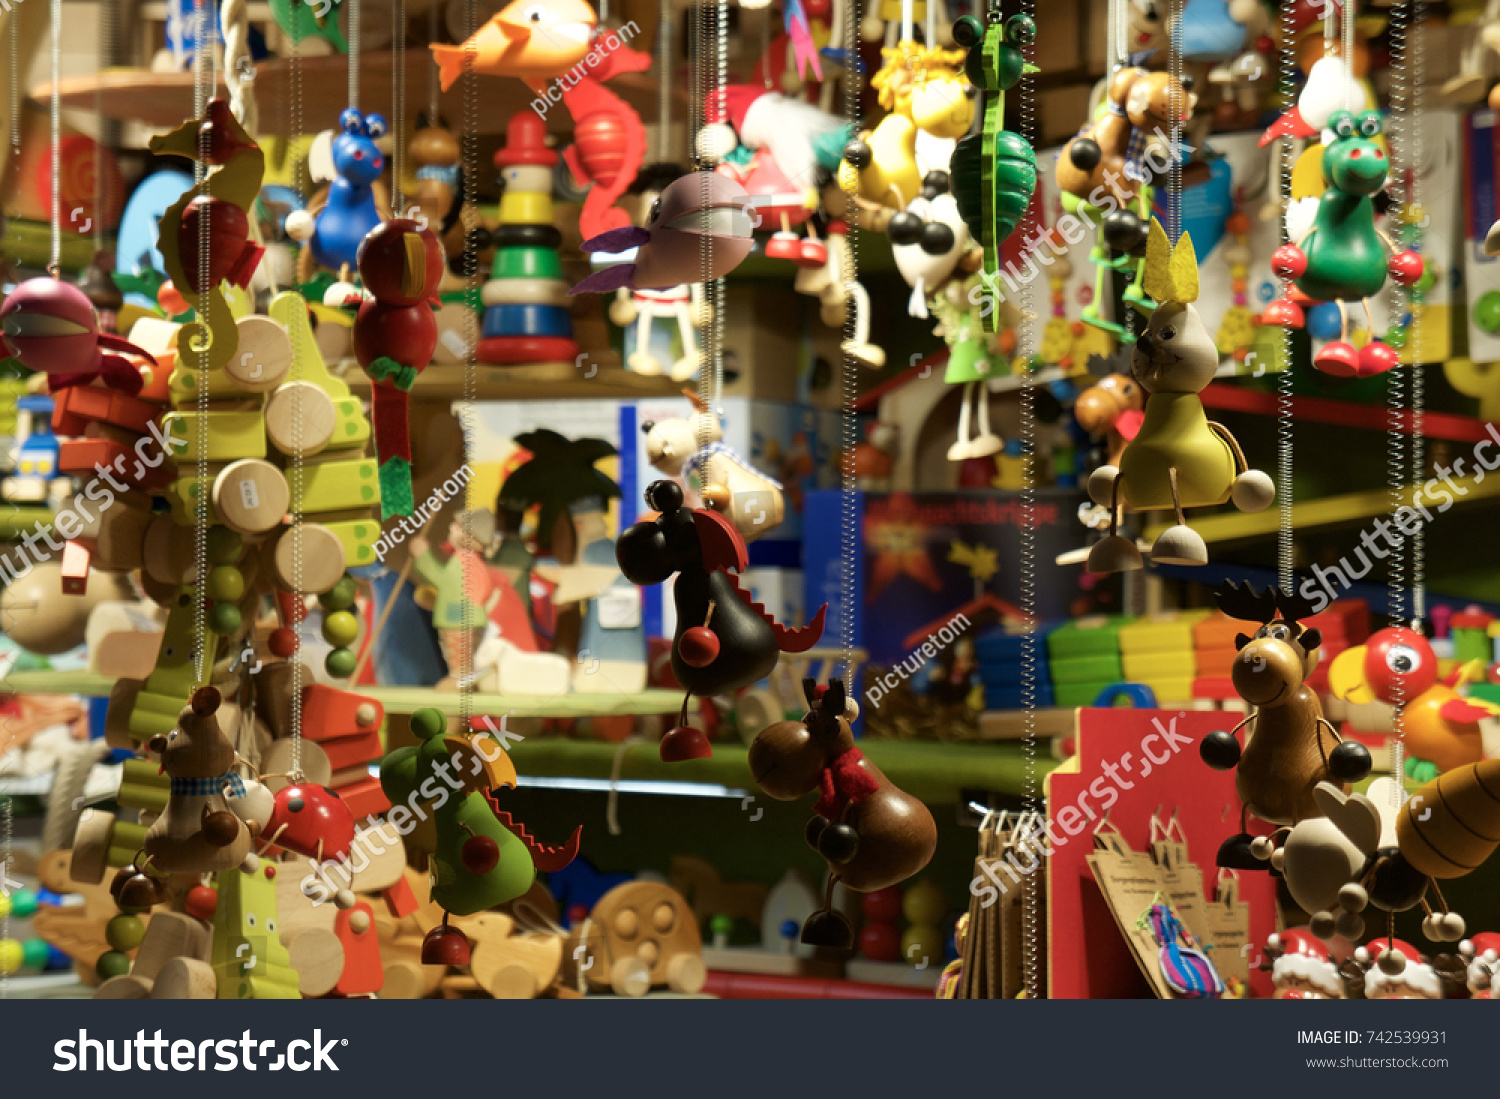 Childrens Toys Cologne Cathedral Christmas Market Stock Photo (Edit ...